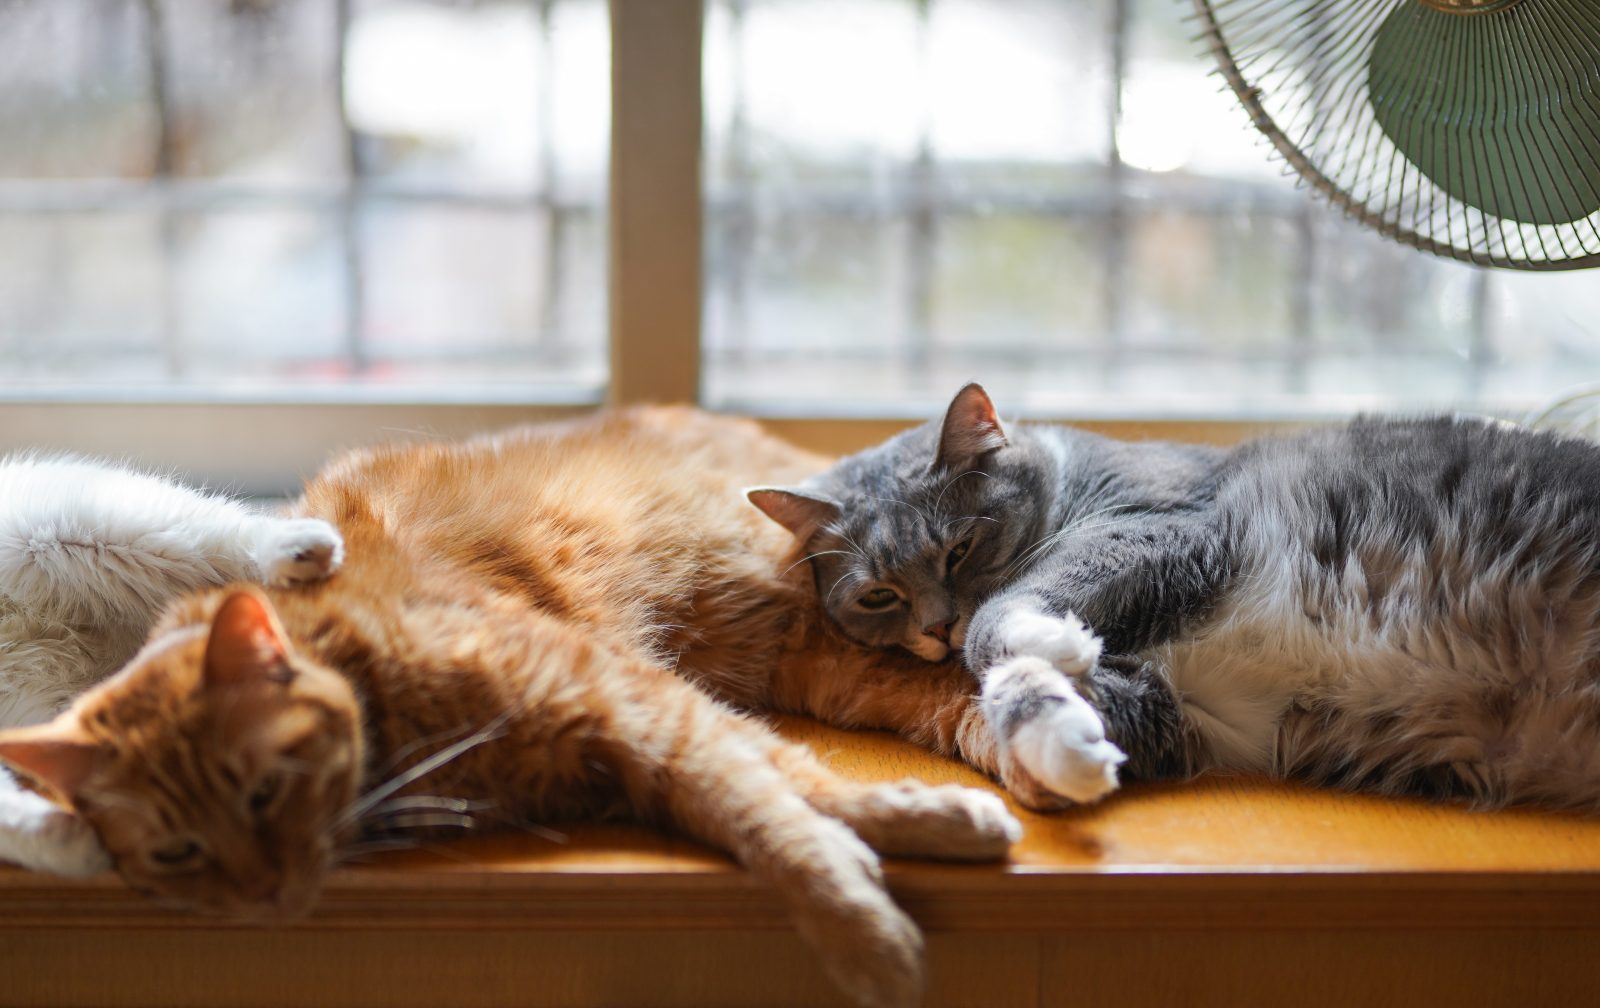 adorable cats sleeping together on top of the table